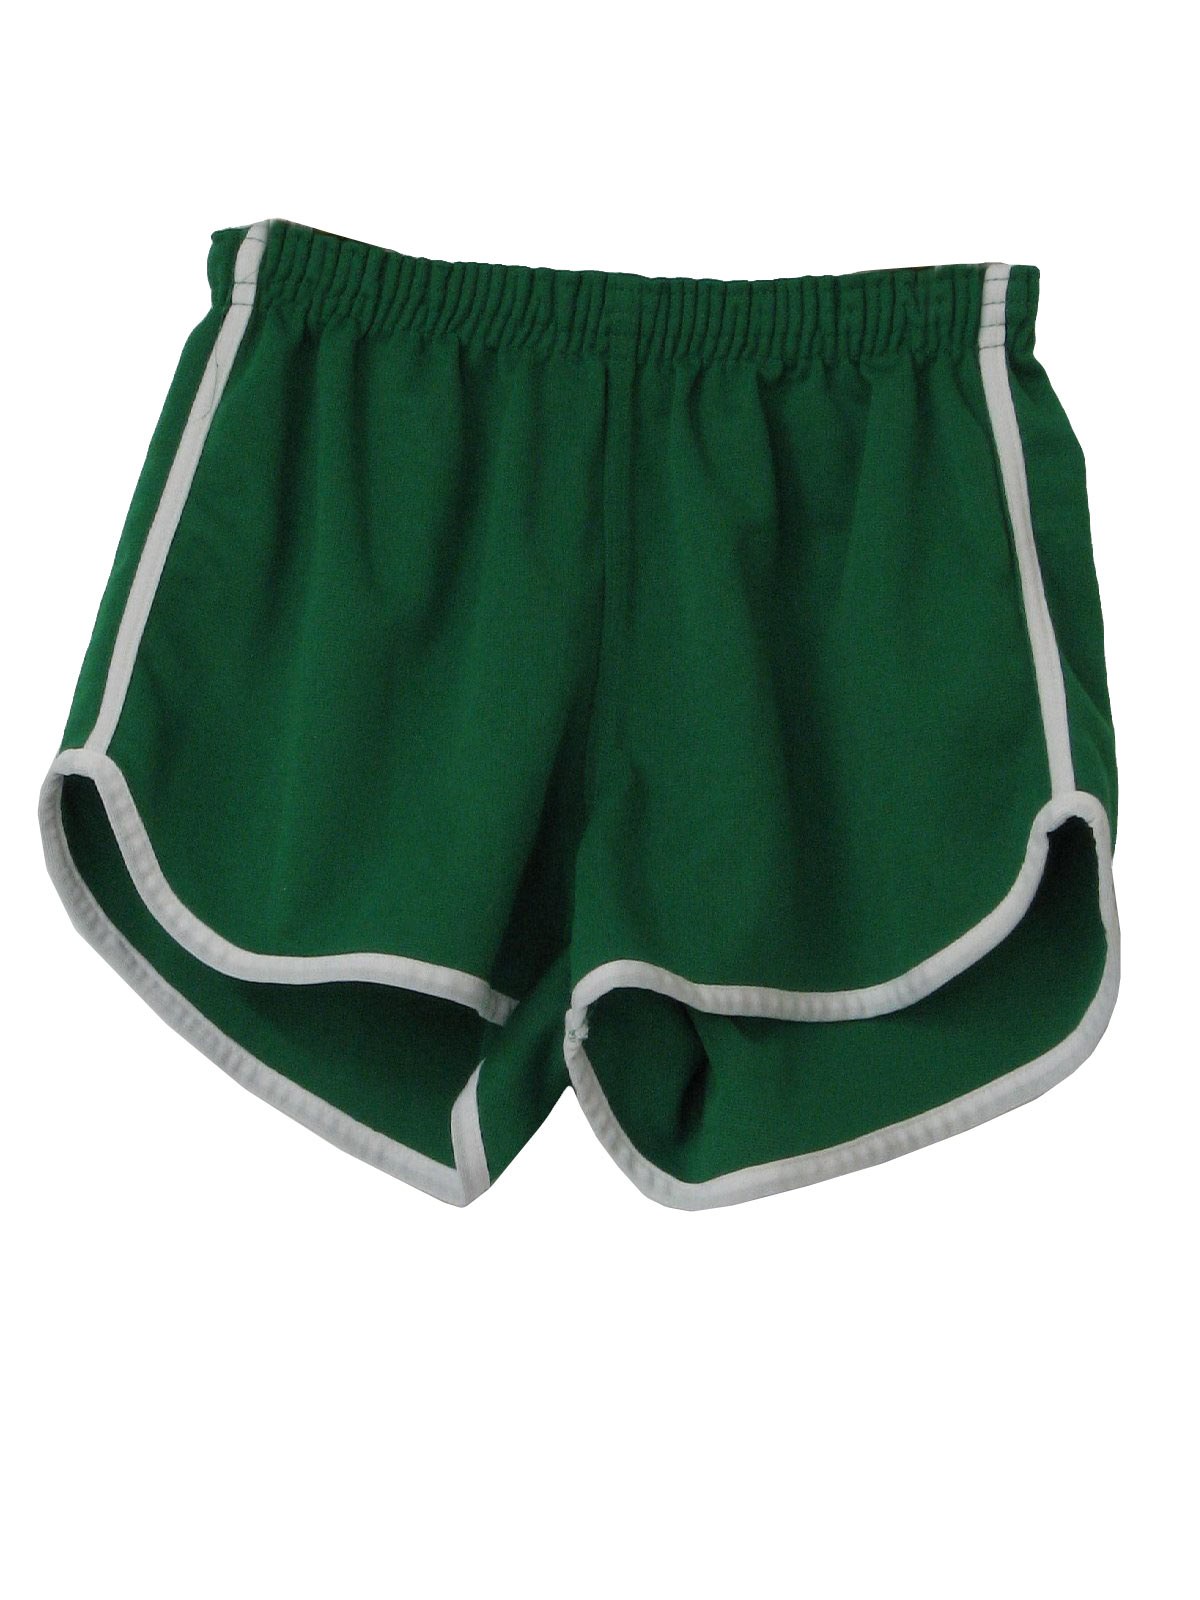 Vintage Kmart 70's Shorts: 70s -Kmart- Mens green and white side ...